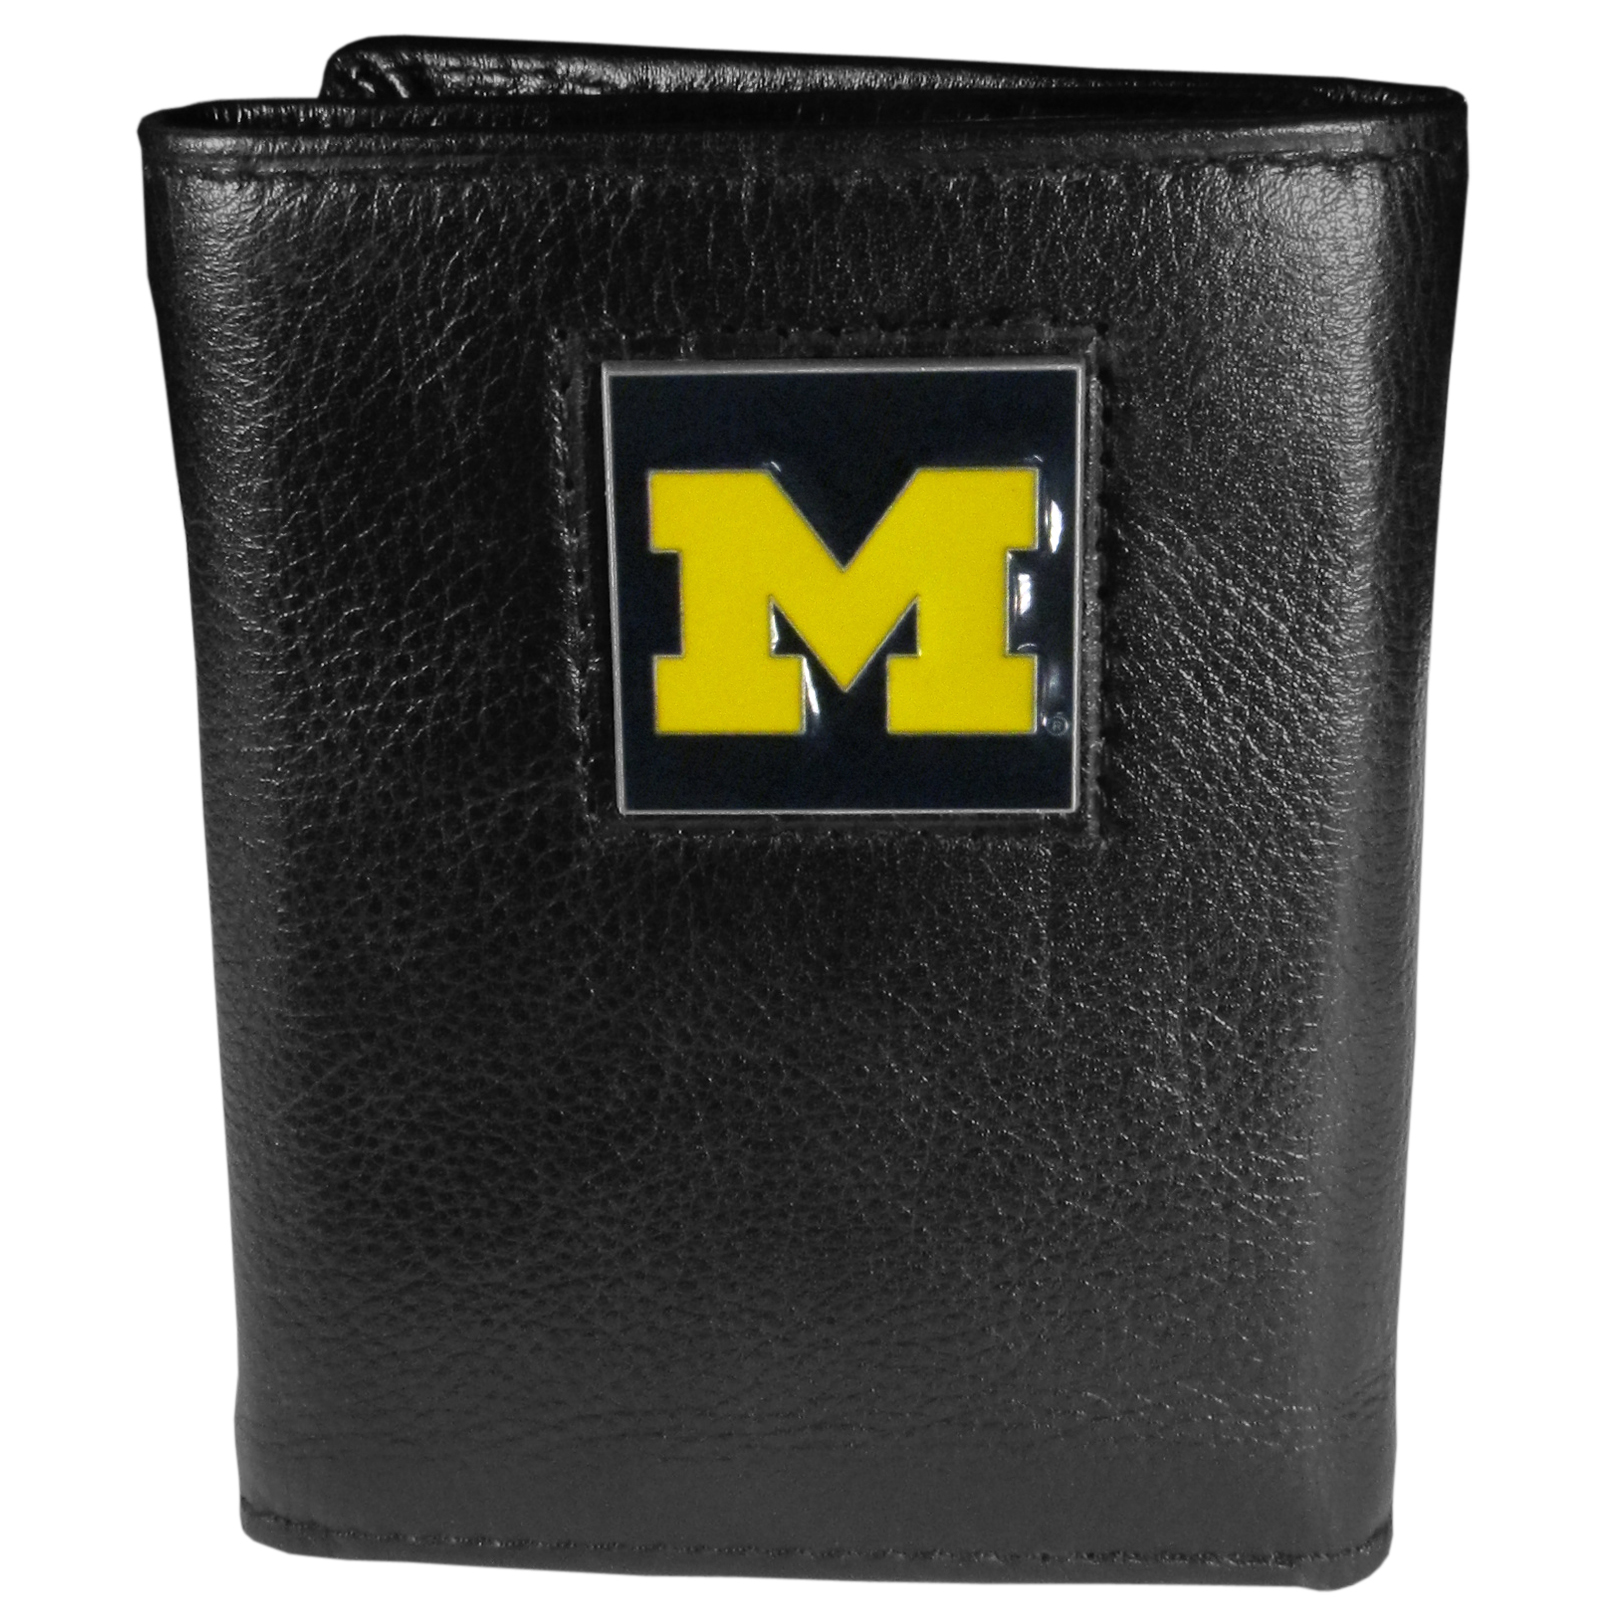 Michigan Wolverines Leather Tri-fold Wallet - Our Michigan Wolverines leather tri-fold wallet features a sculpted and hand painted team square on a black leather tri-fold. Includes an ID window, slots for credit cards and clear plastic photo sleeves. For a sporty feel, the liner of the wallet is made with a canvas liner.